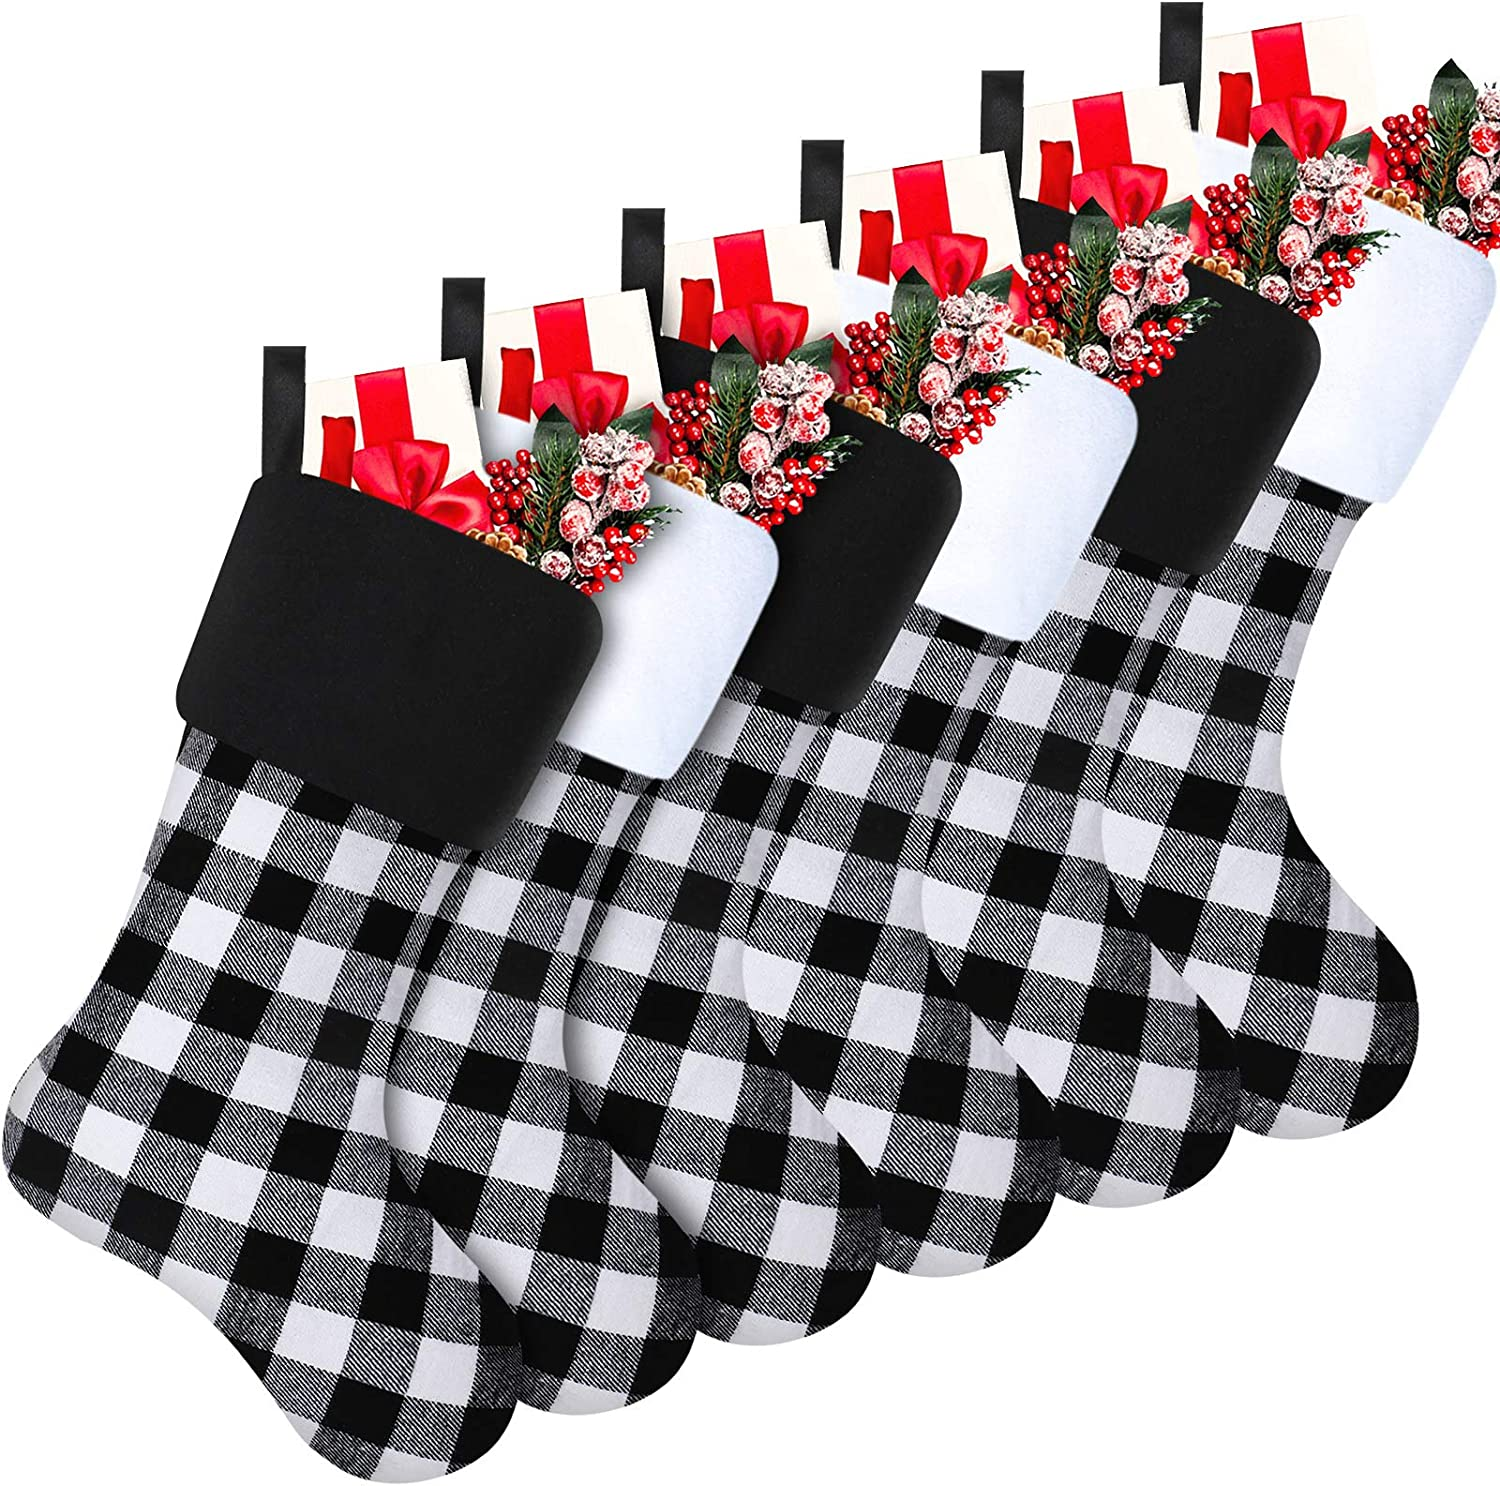 online shopping Skylety 20 Inch Christmas Stockings Stocking SEAL limited product Faux Plaid Cuff Fur